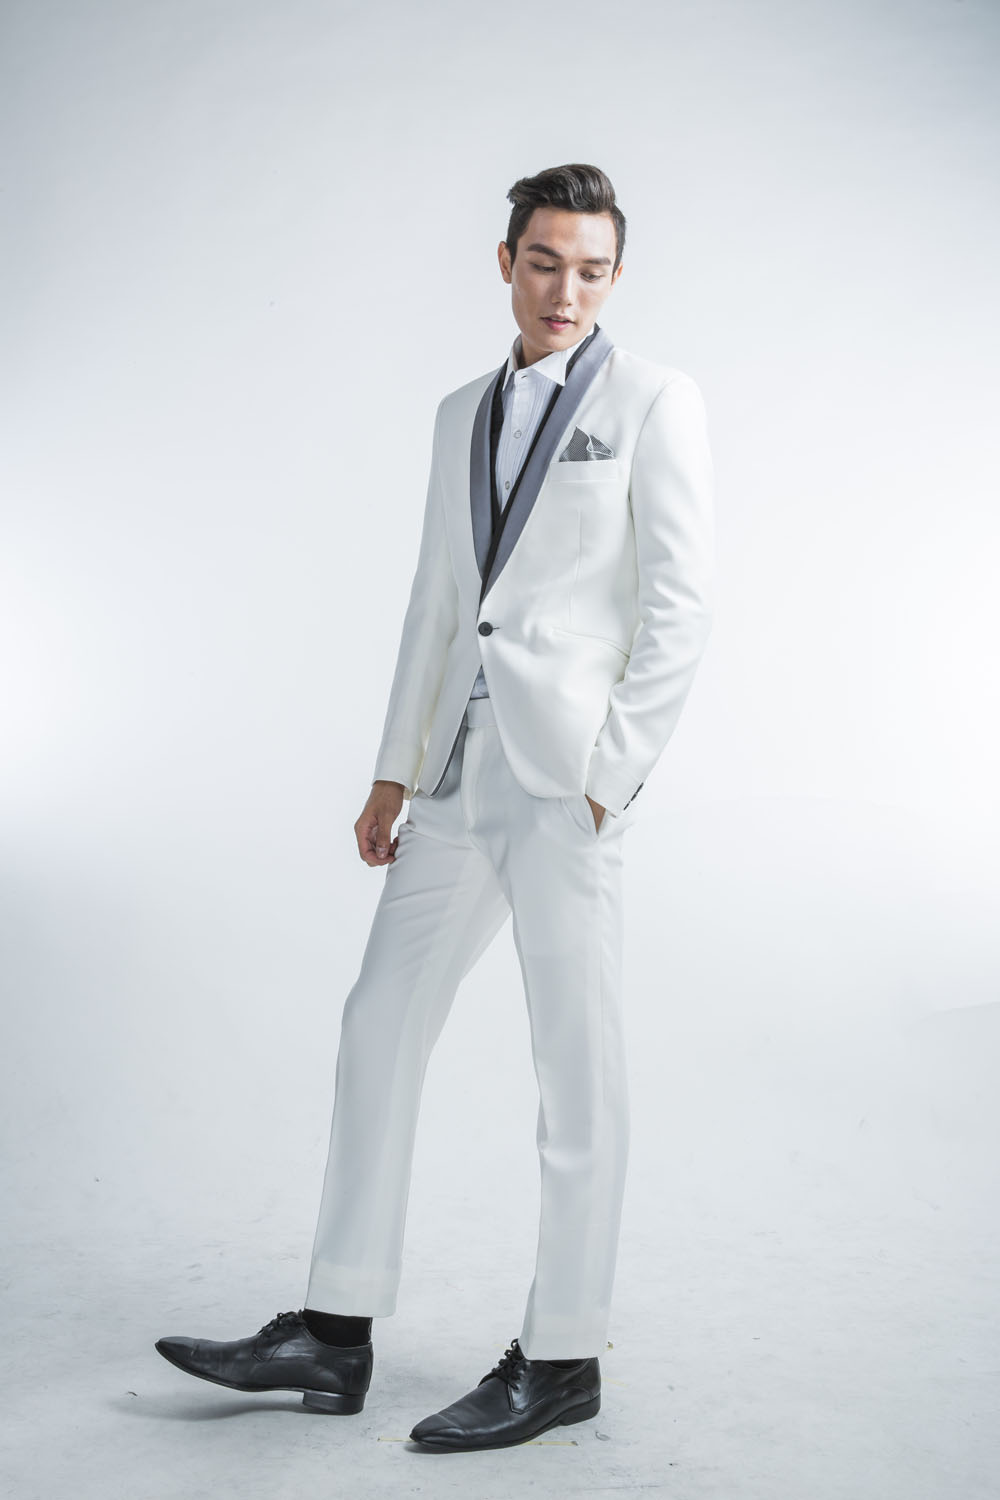 Men suit rental | Men suit | Men suit rental singapore